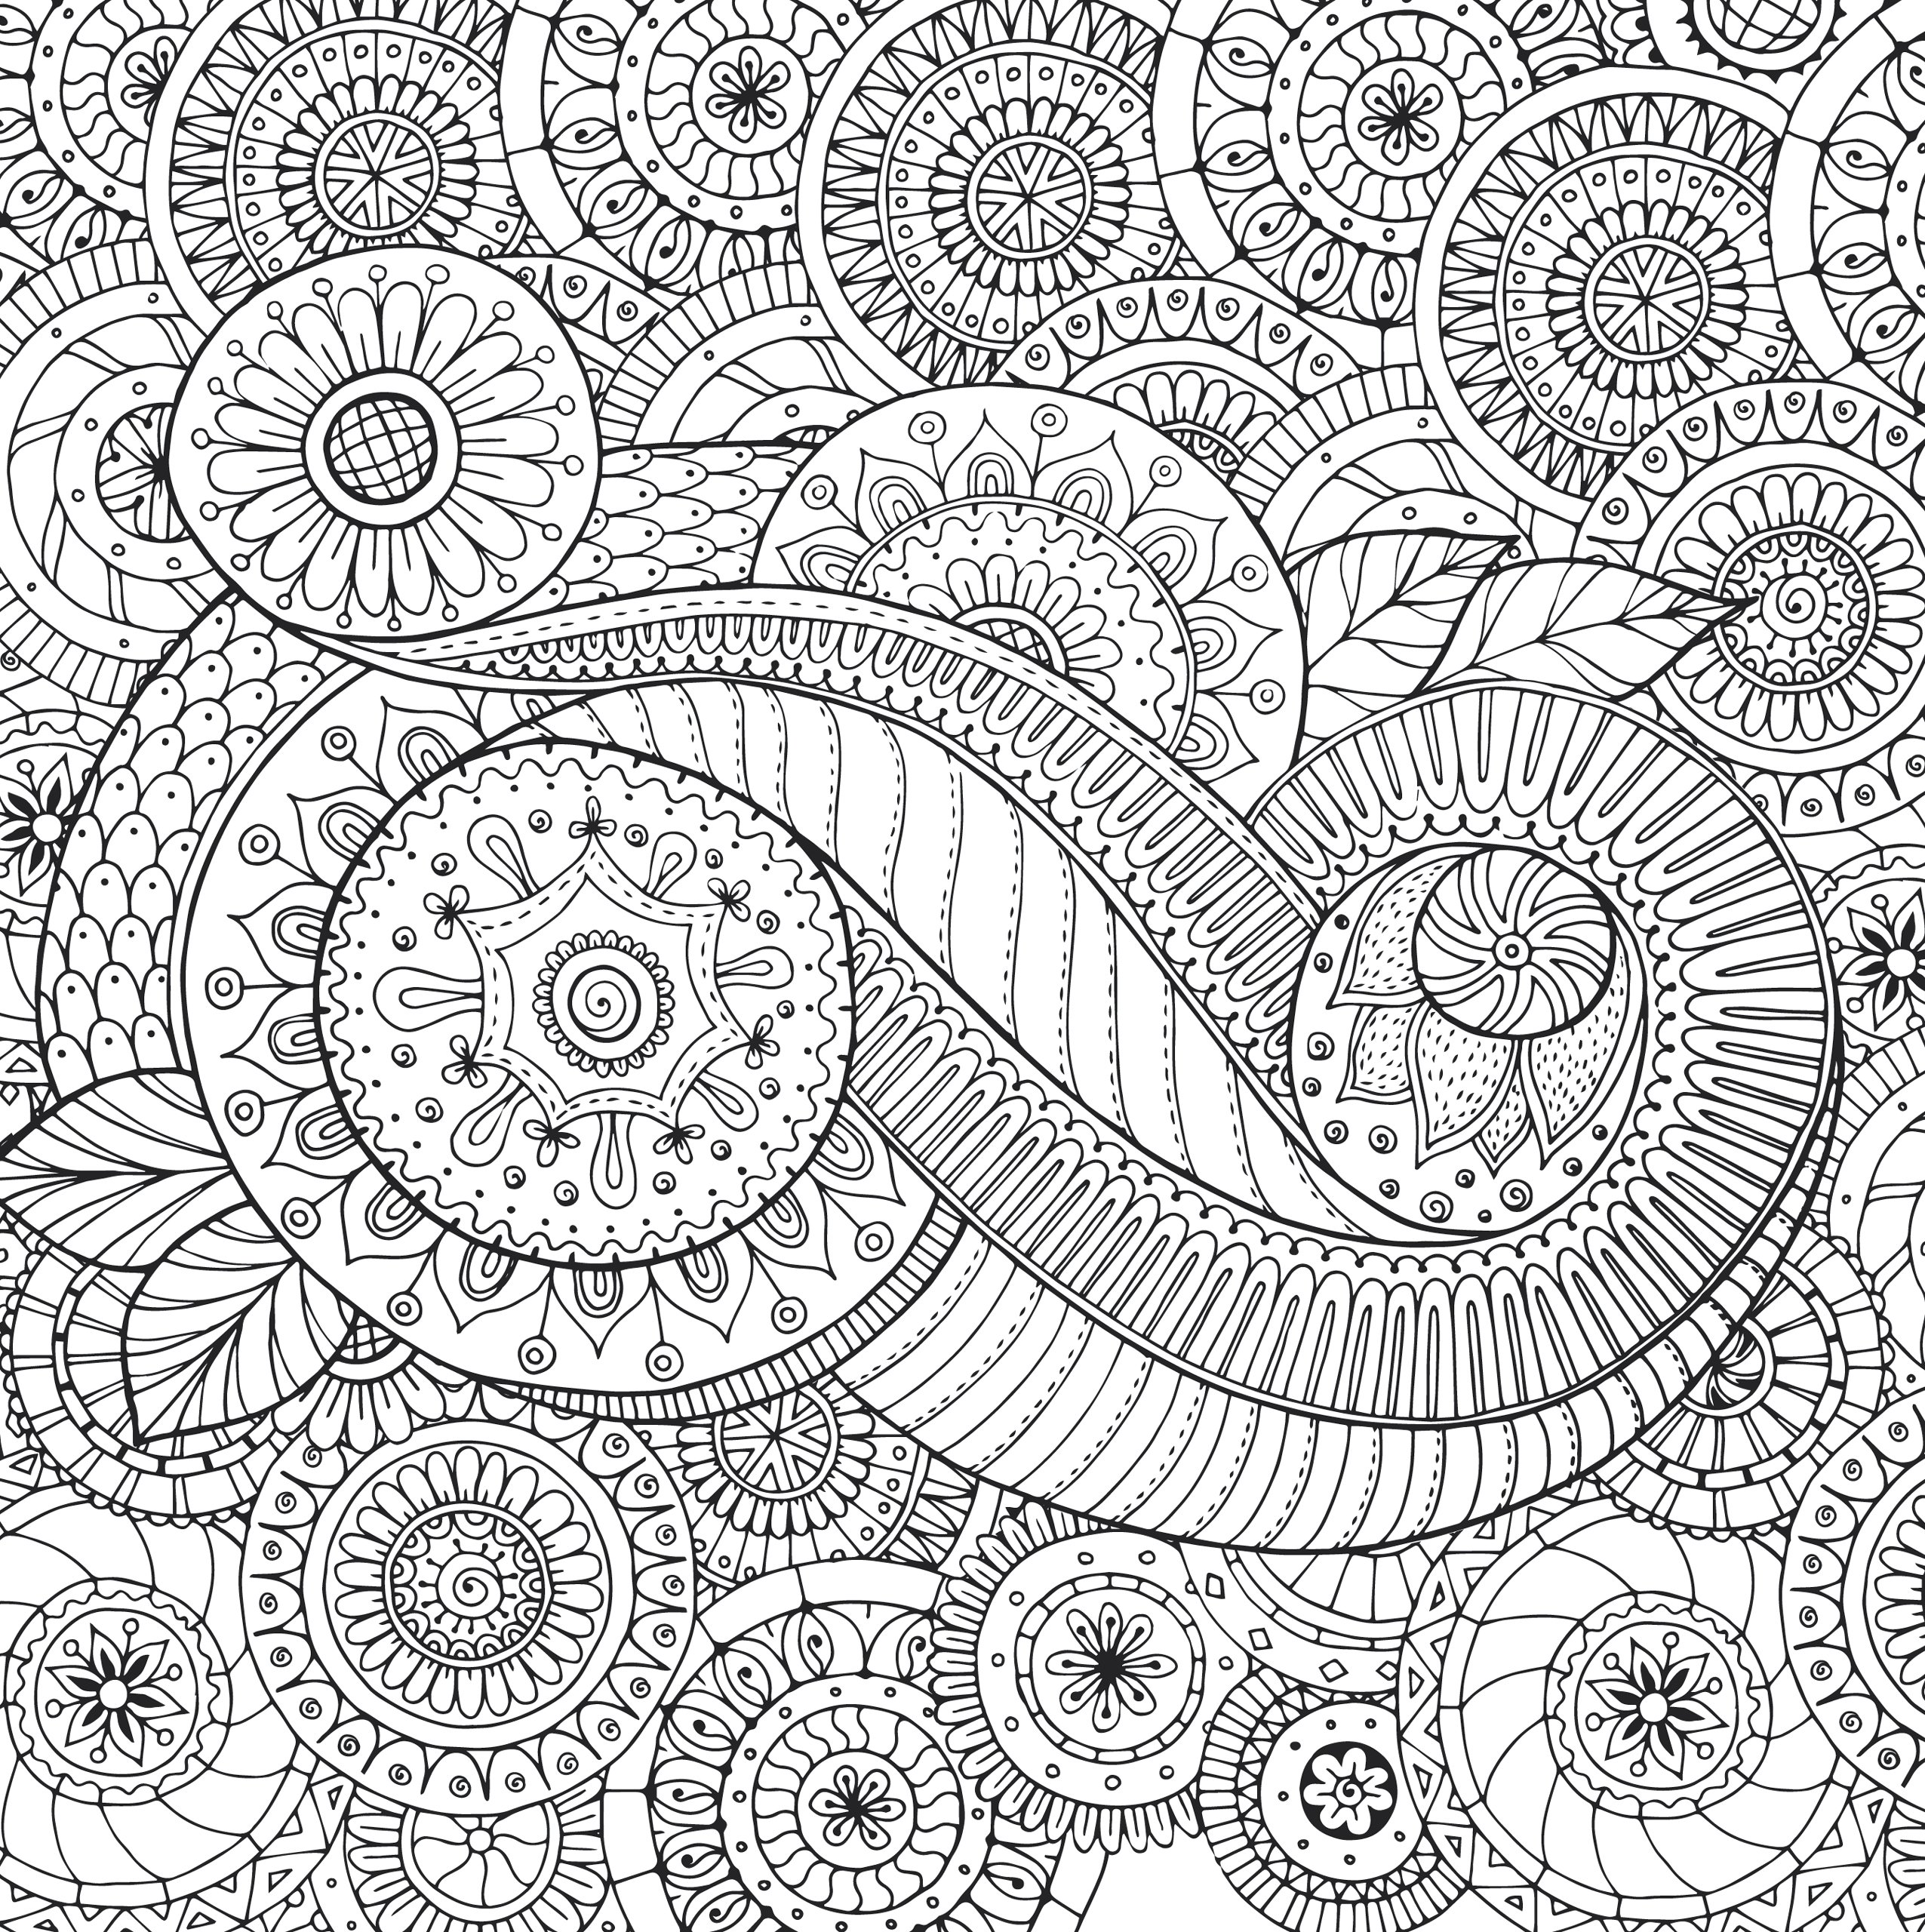 Peaceful Paisleys Adult Coloring Book (31 stress-relieving designs ...